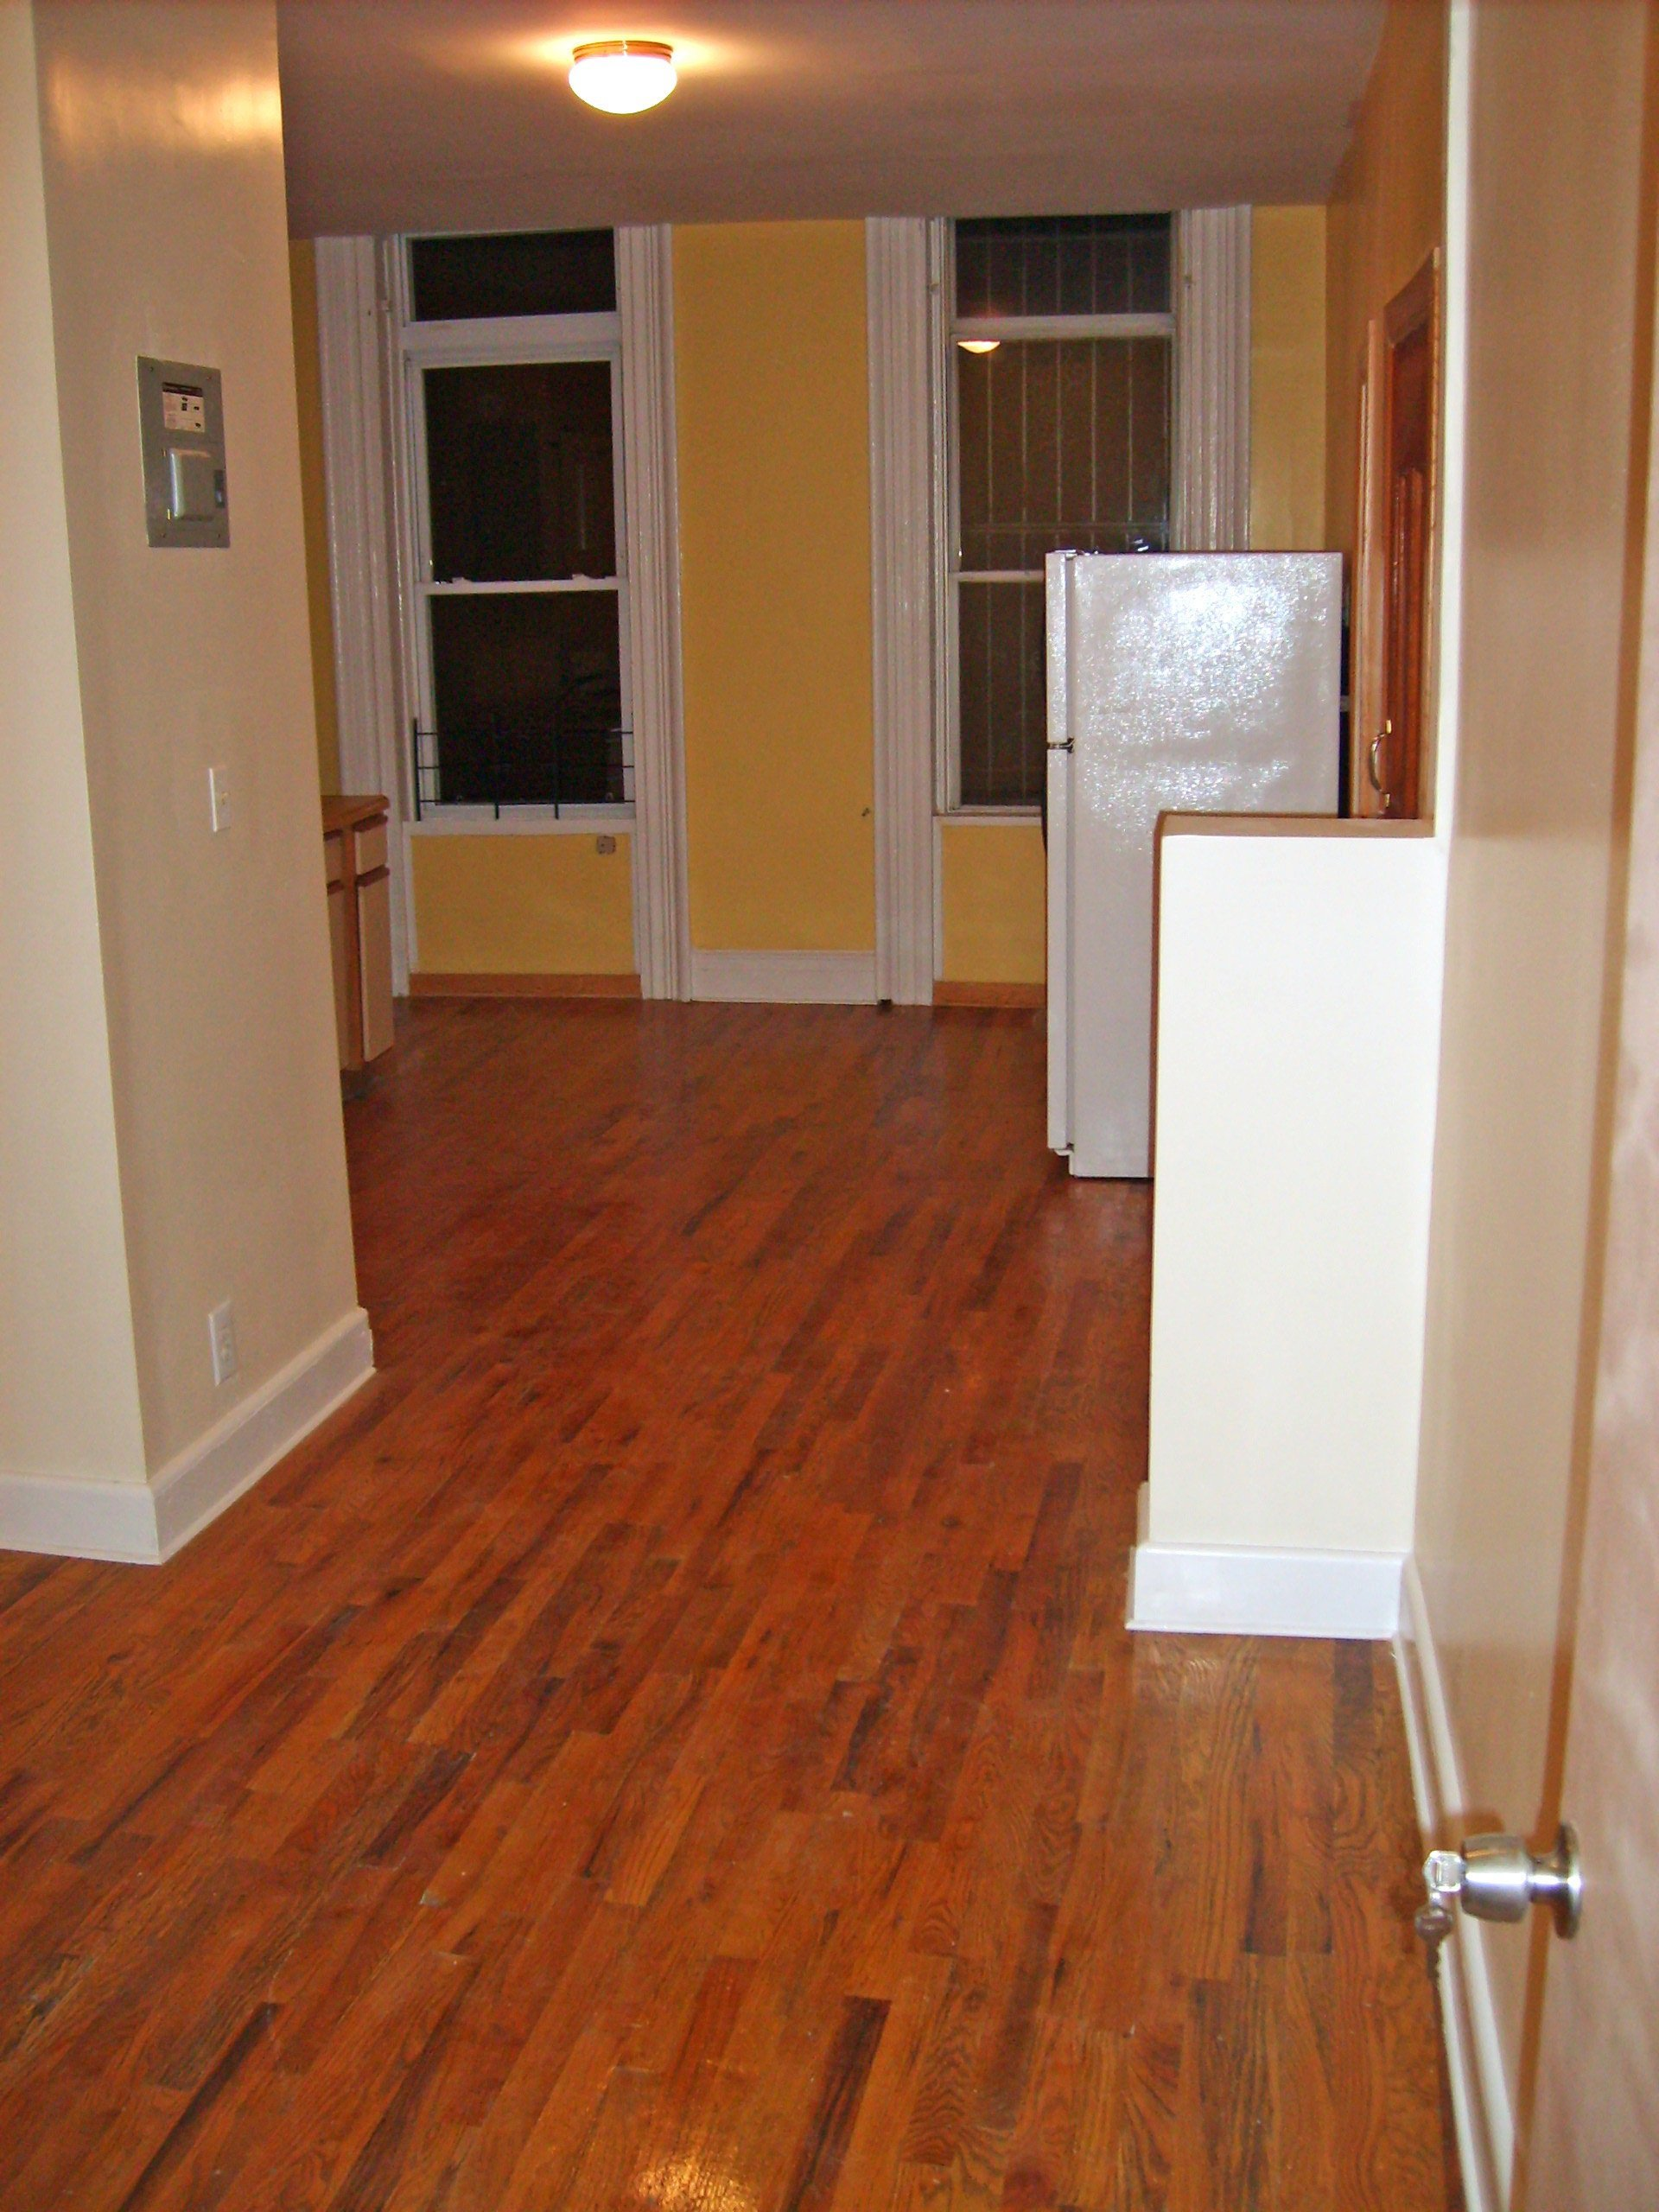 Bedford stuyvesant 1 bedroom apartment for rent brooklyn for Stuyvesant apartments